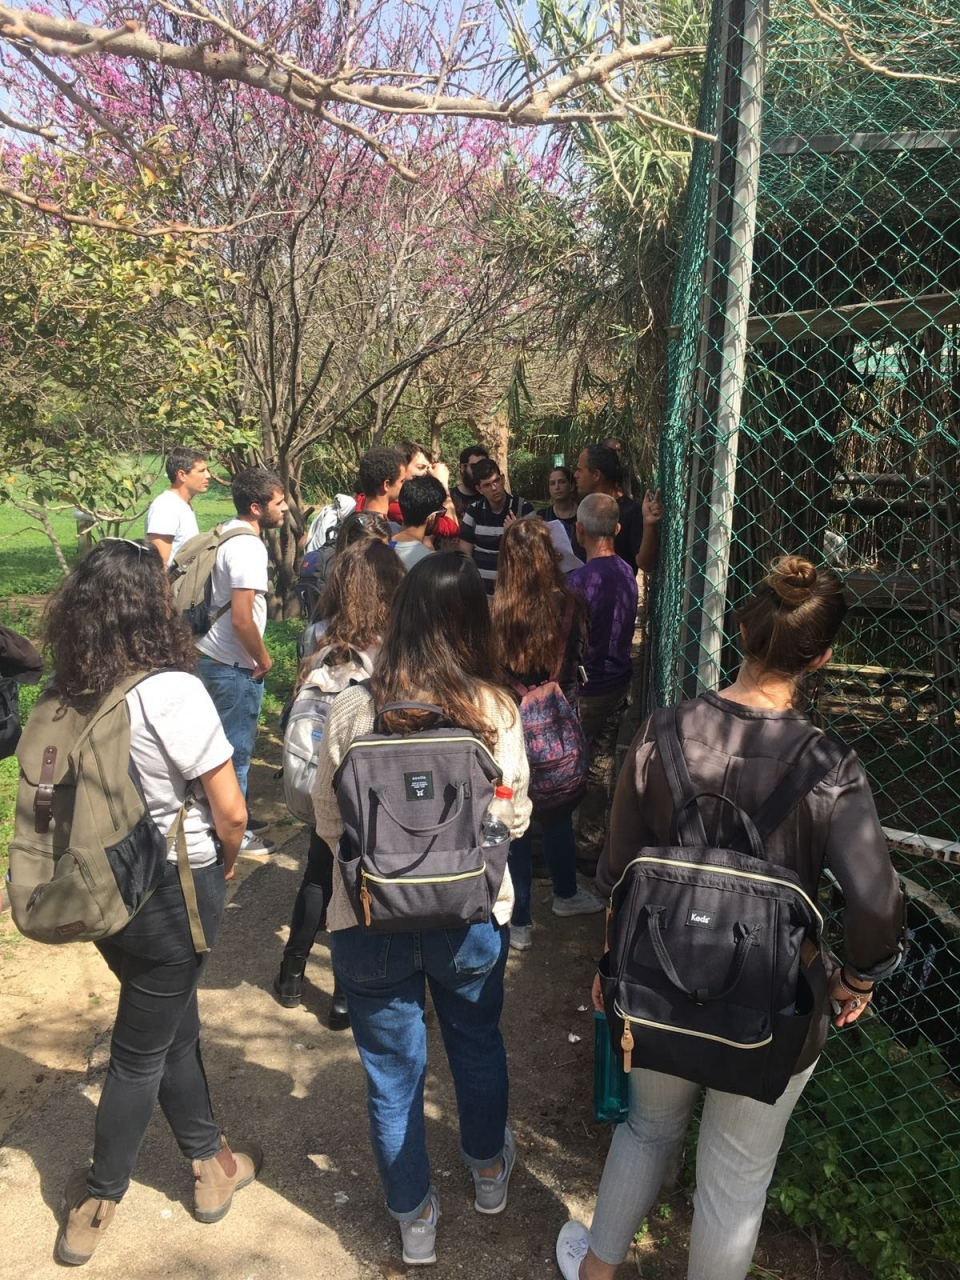 The students on a tour in the Zoological Garden, photo: Noga Kronfled-Schor